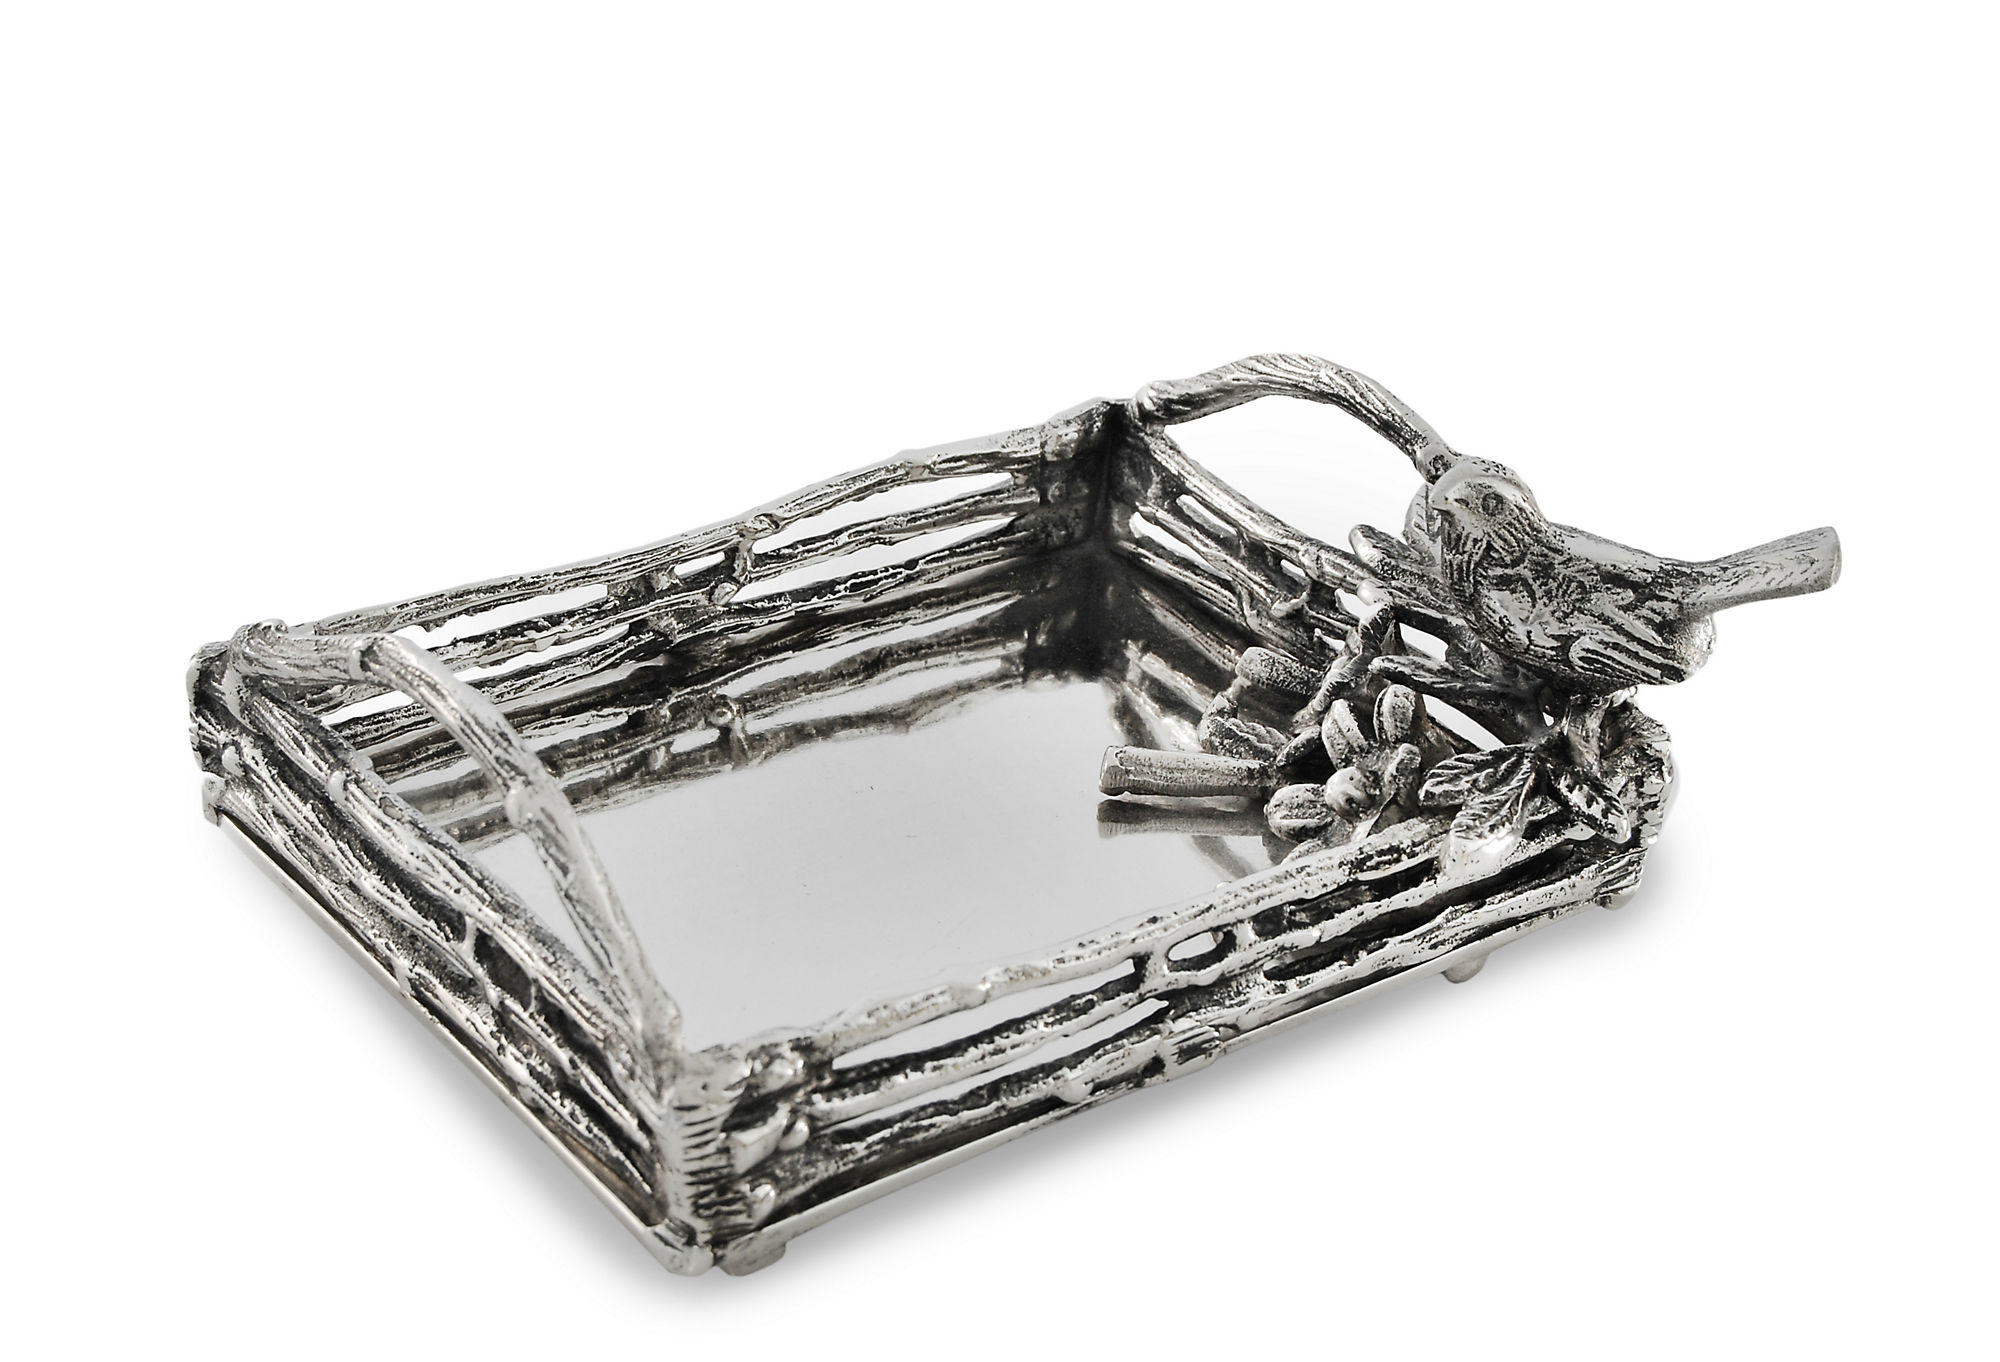 8 Quot Bird Amp Branches Tray Silver From One Kings Lane